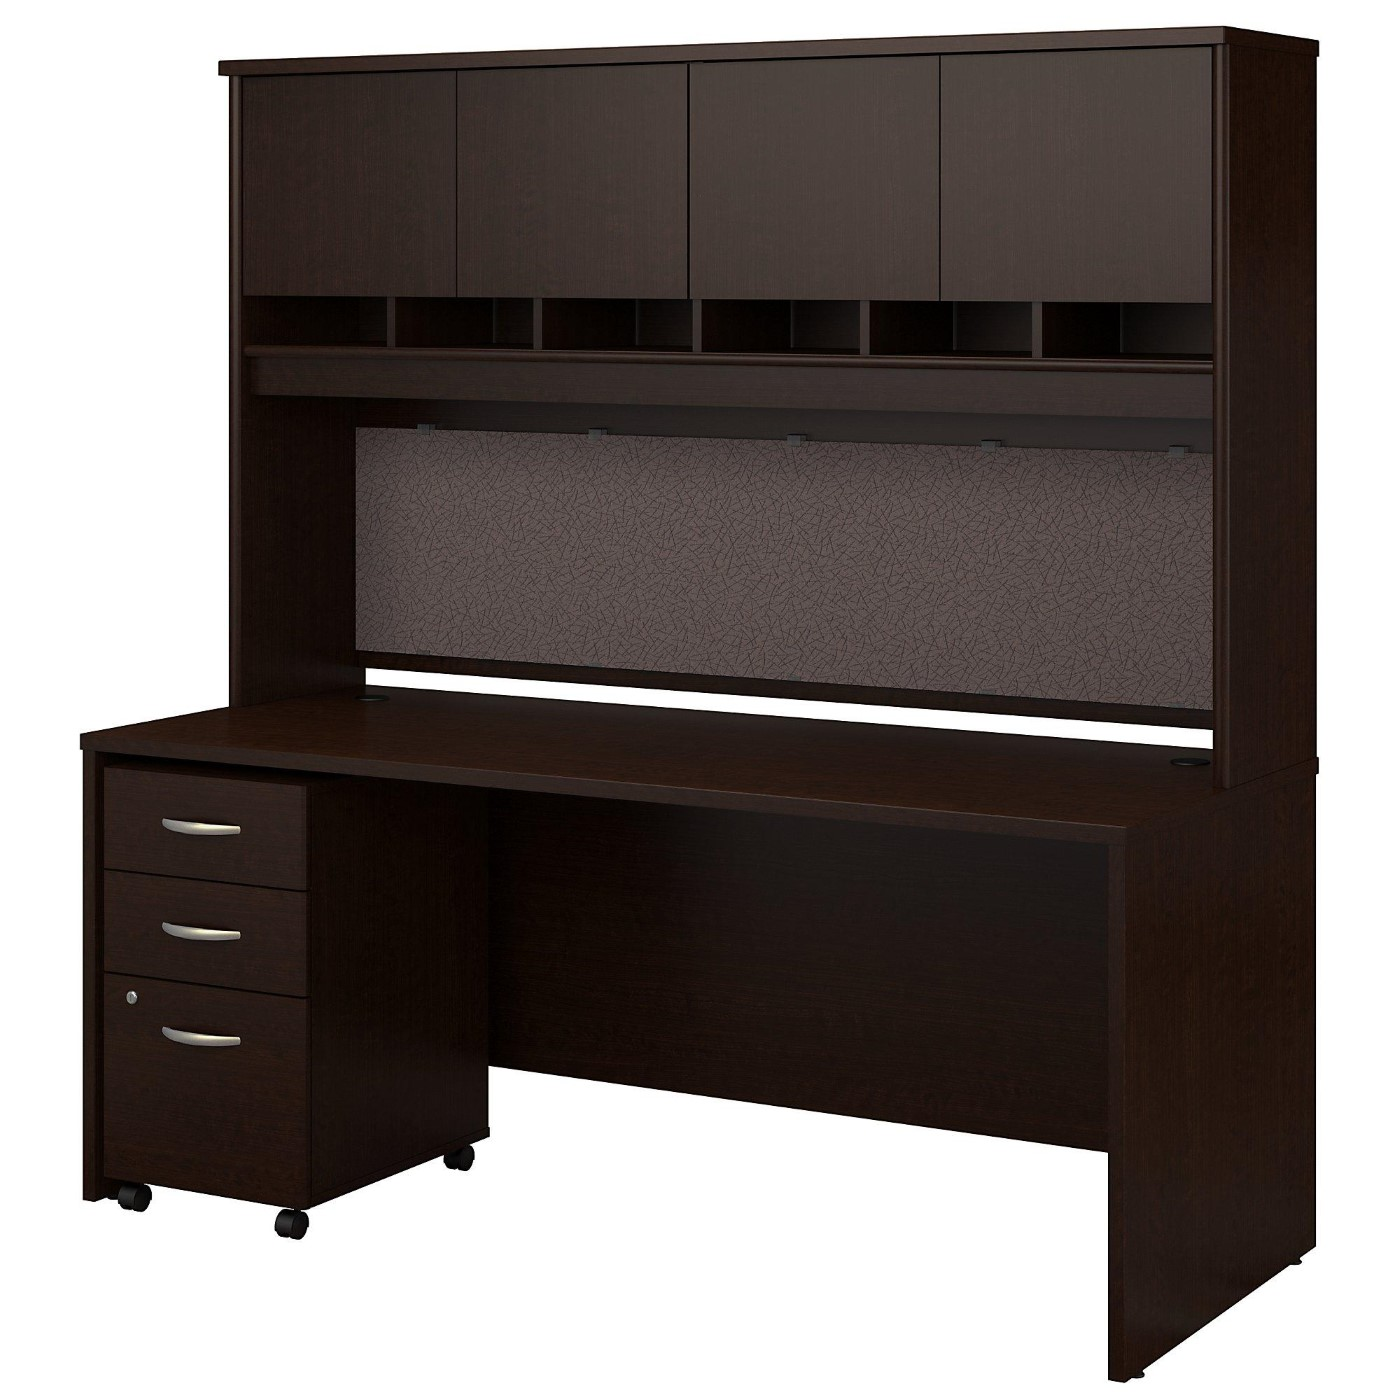 BUSH BUSINESS FURNITURE SERIES C 72W X 30D OFFICE DESK WITH HUTCH AND MOBILE FILE CABINET. FREE SHIPPING  VIDEO BELOW.